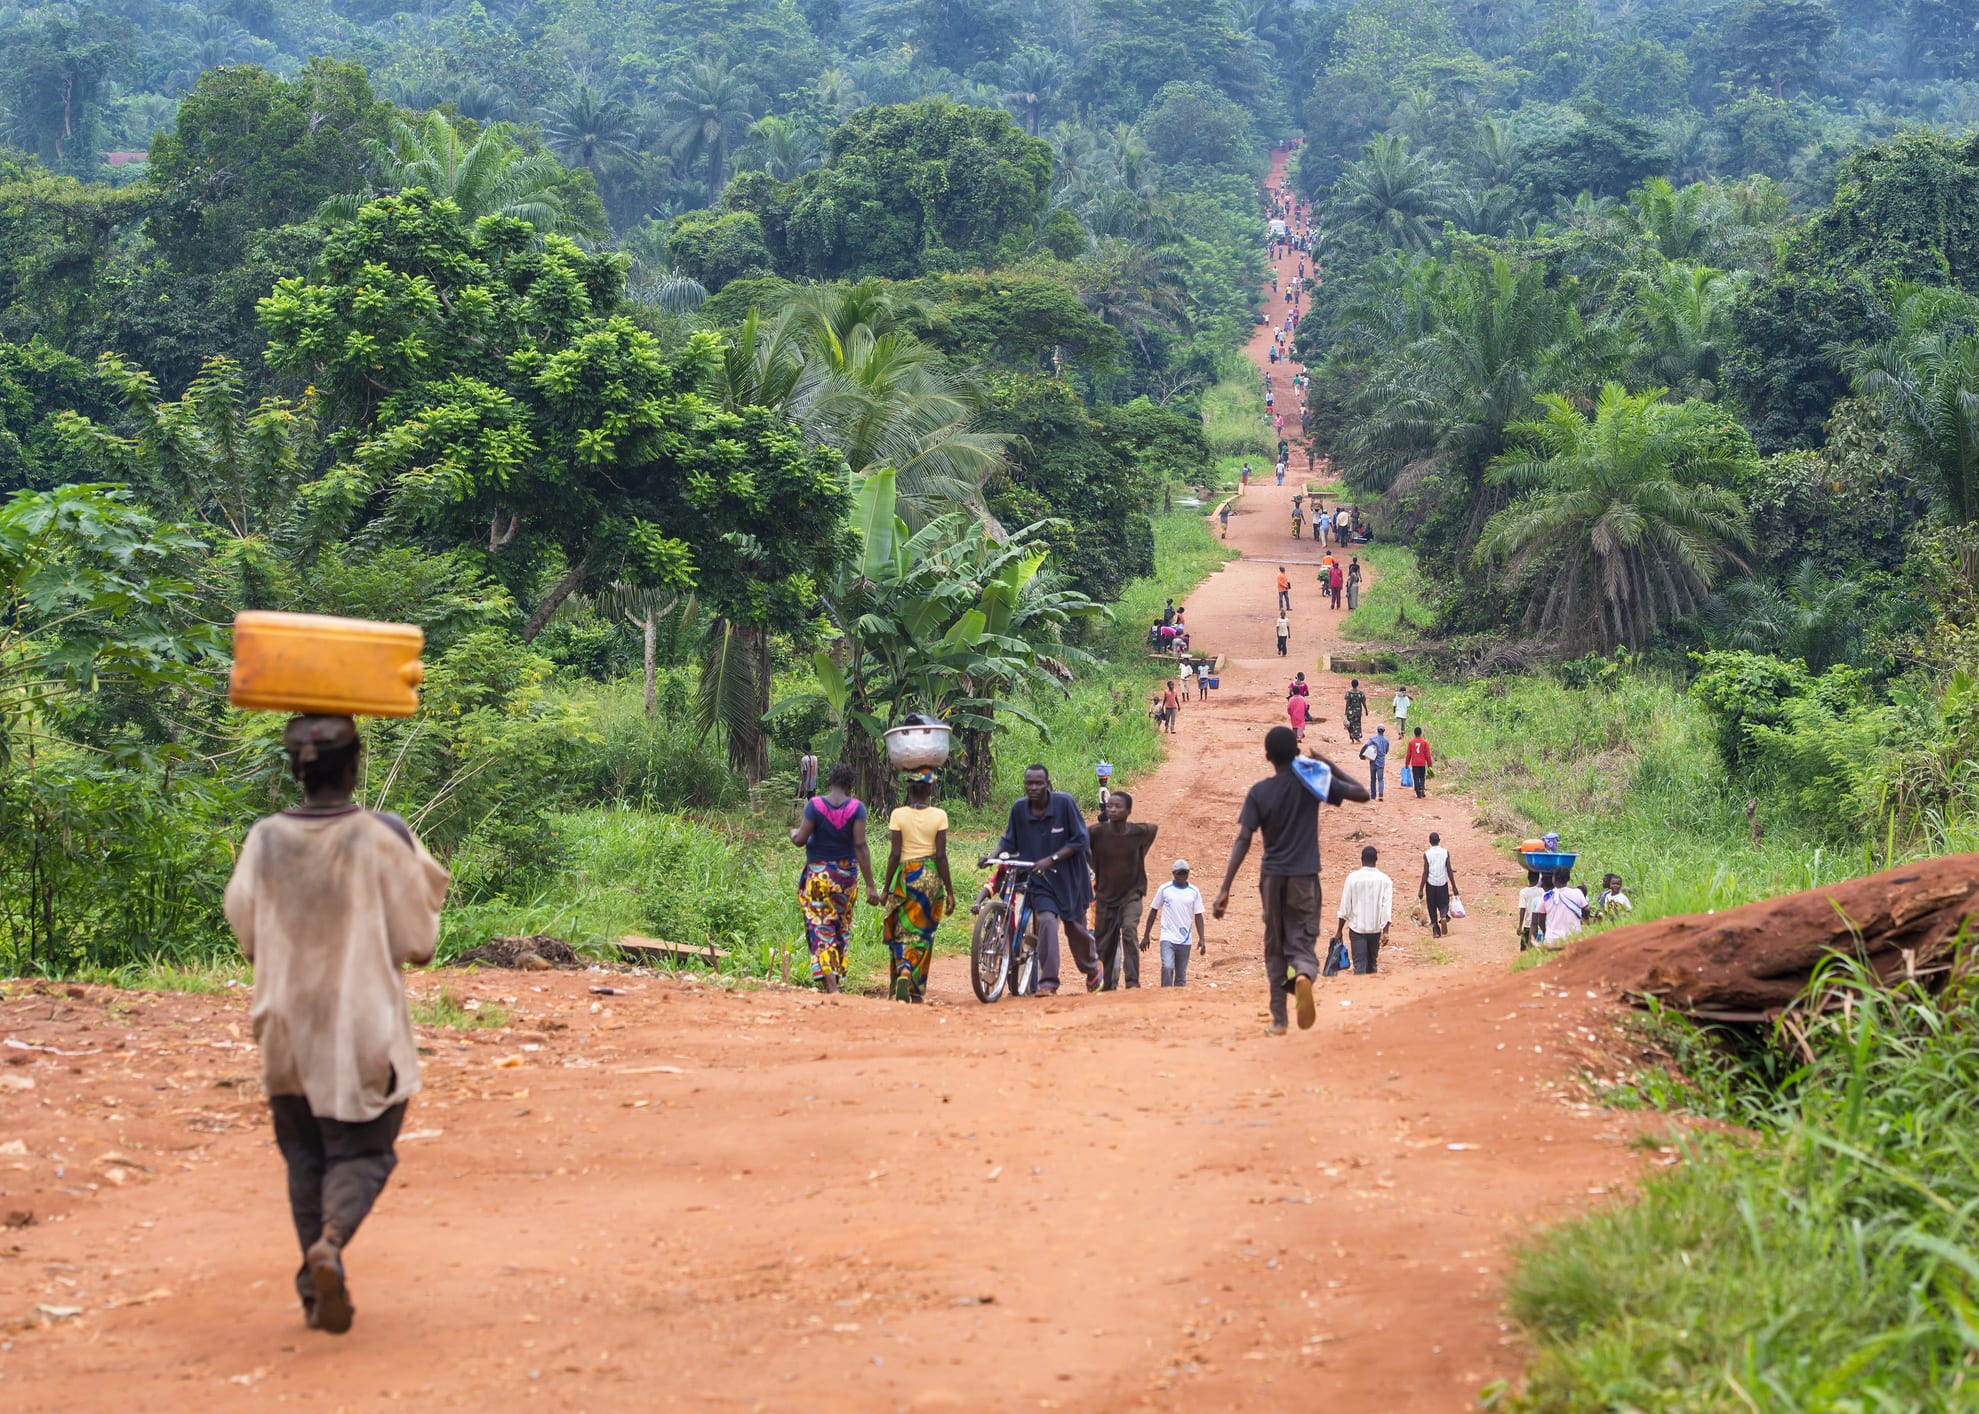 People walk on an unpaved road in DR Congo